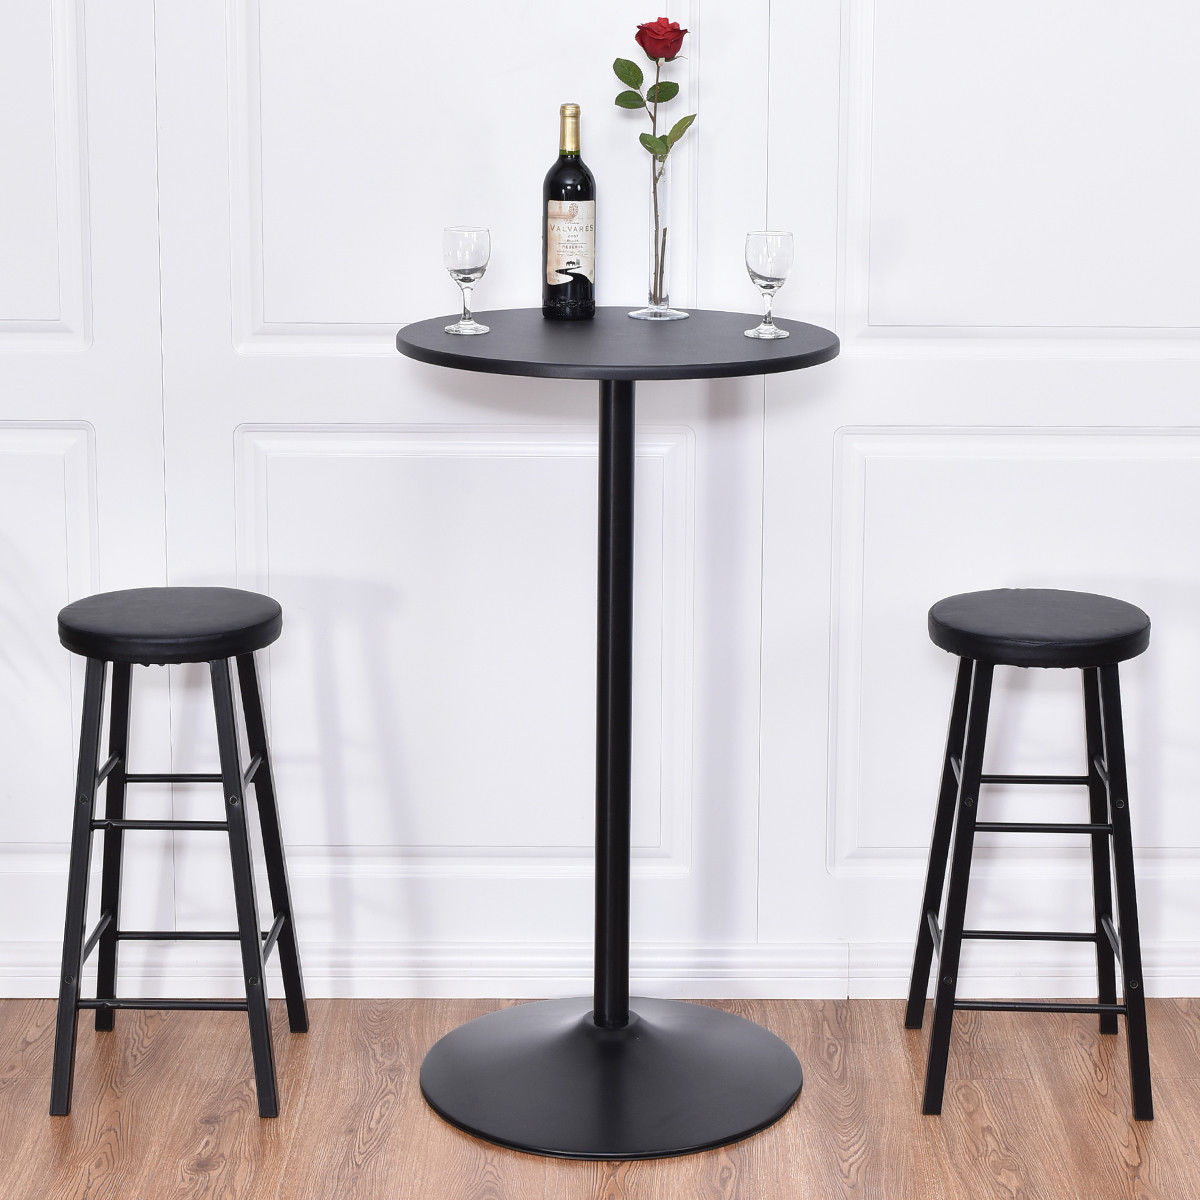 Costway 3pc Round Pub Table 2 Stools Wood Black ,Pub Table Set, Kitchen Dining Furniture by Costway